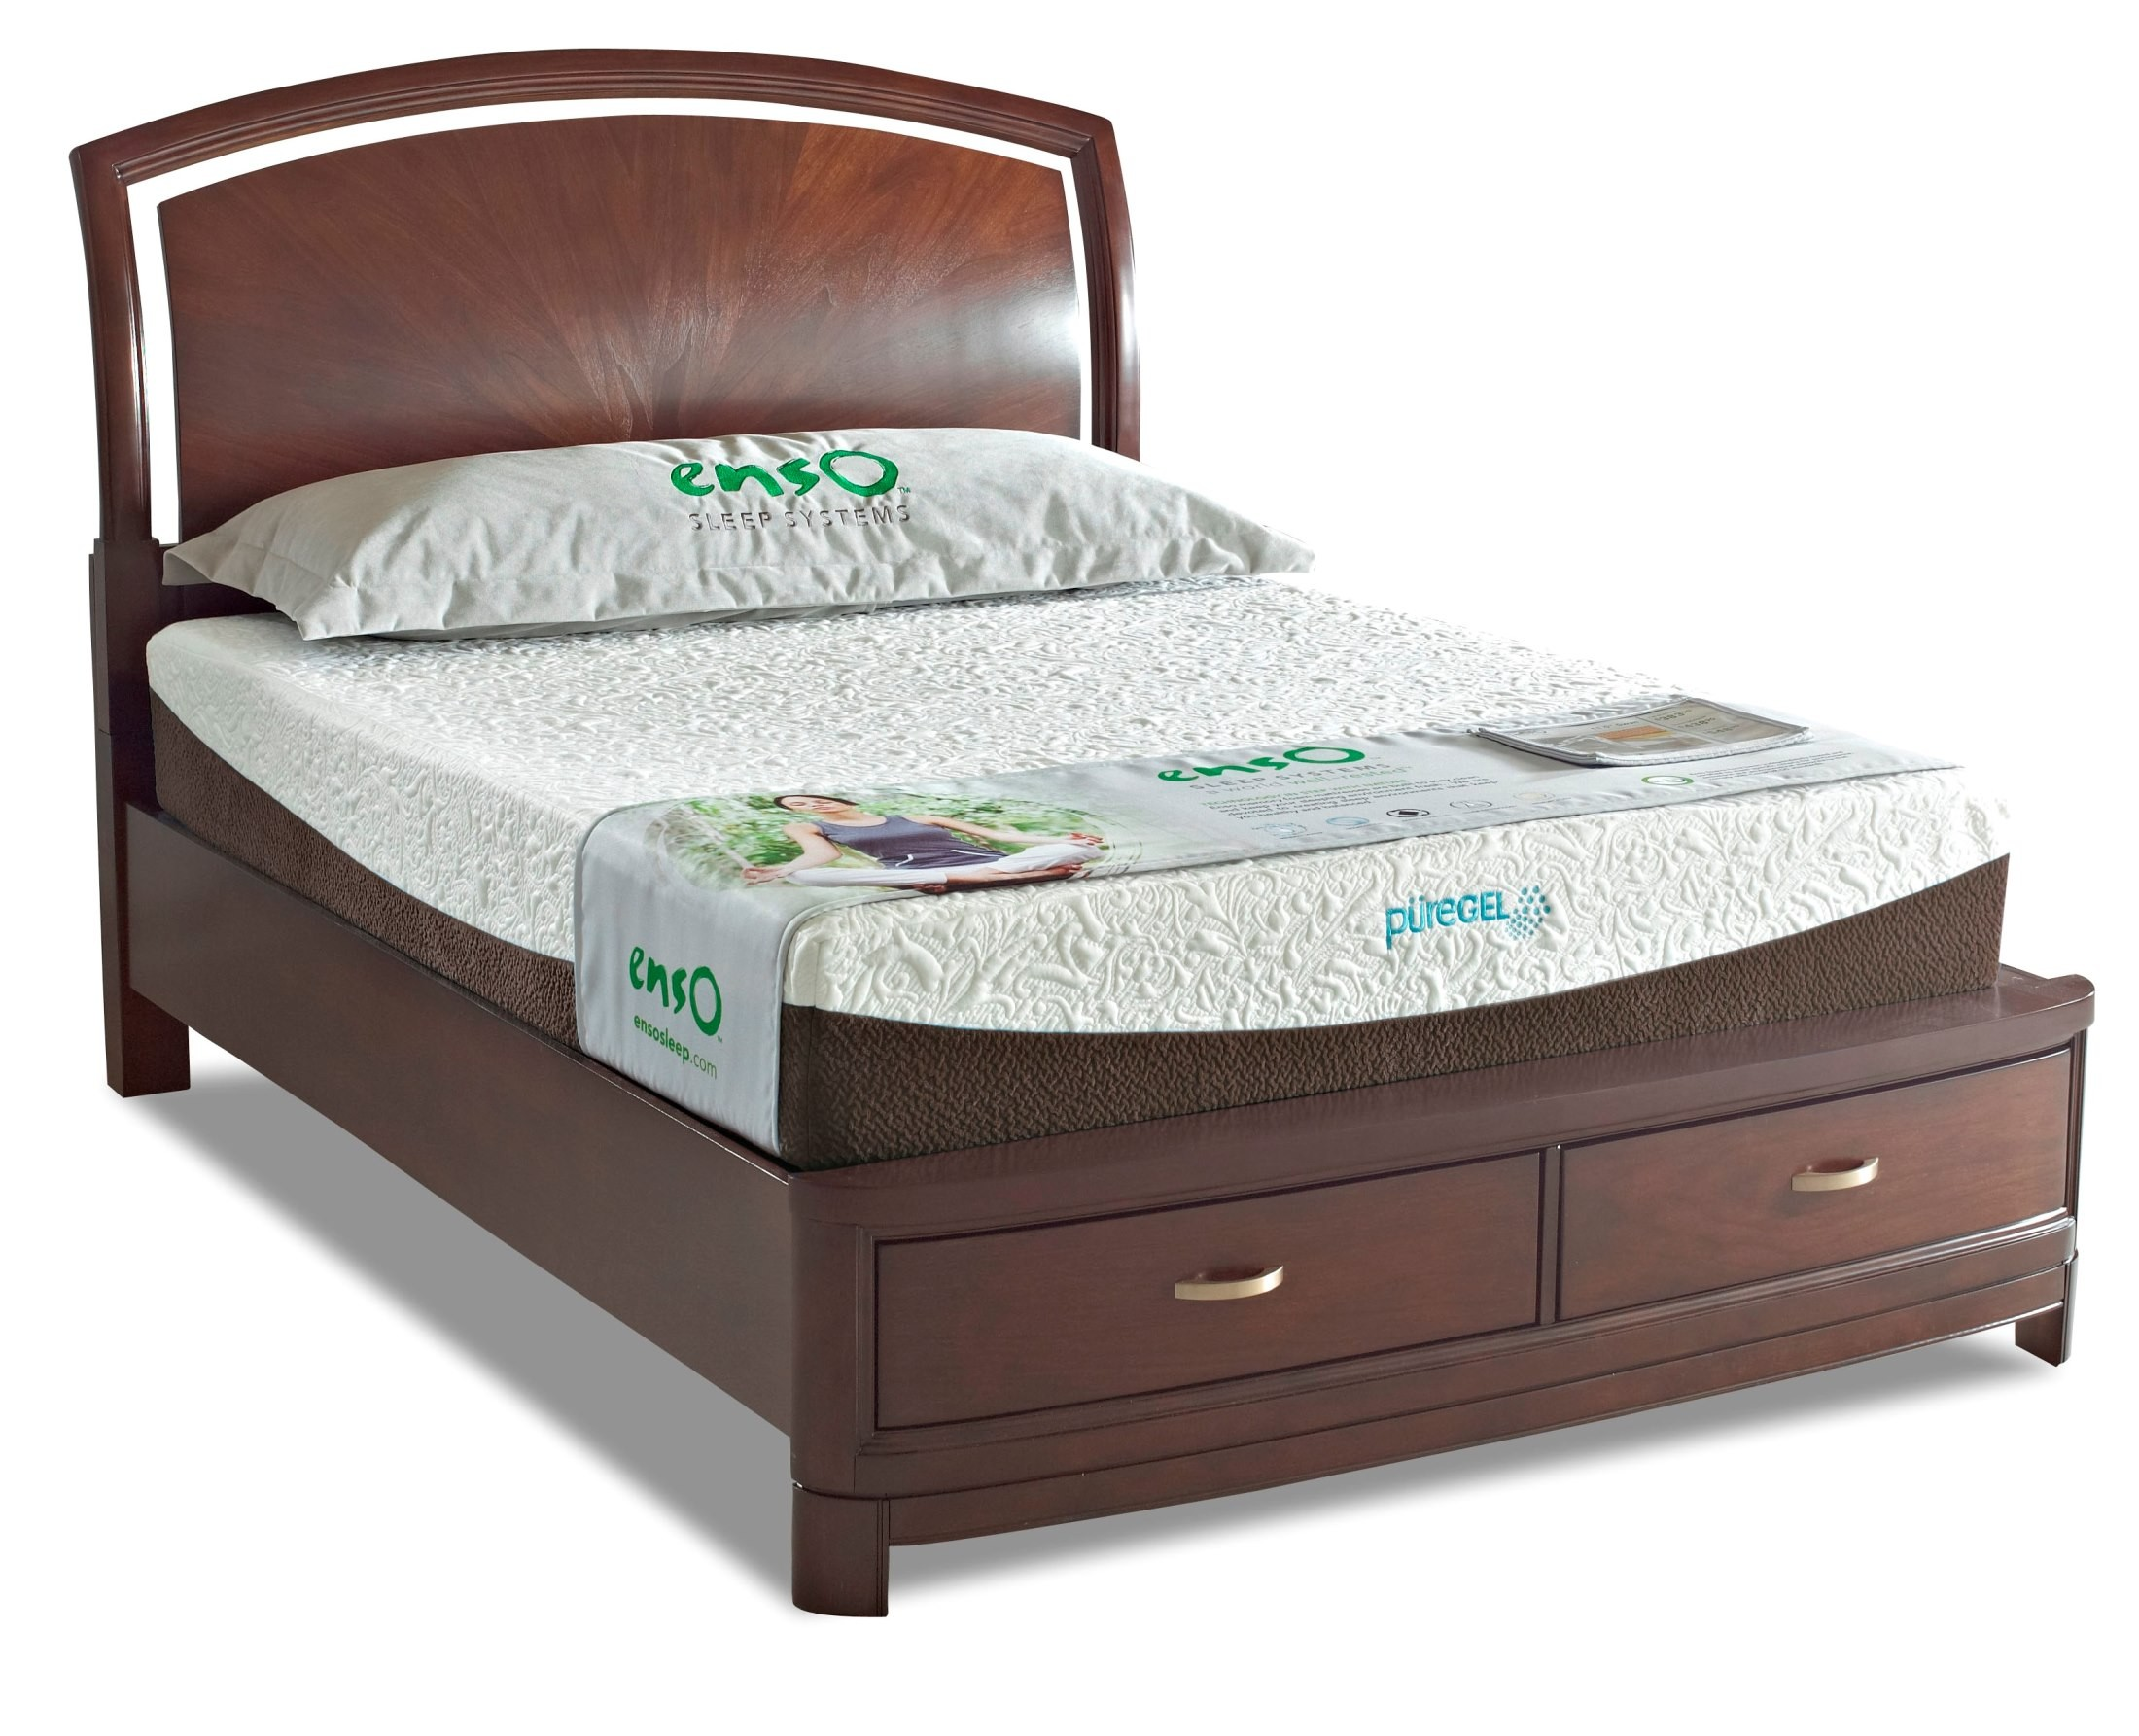 Denali 10 Memory Foam King Size Mattress From Klaussner Denalikkmat Coleman Furniture